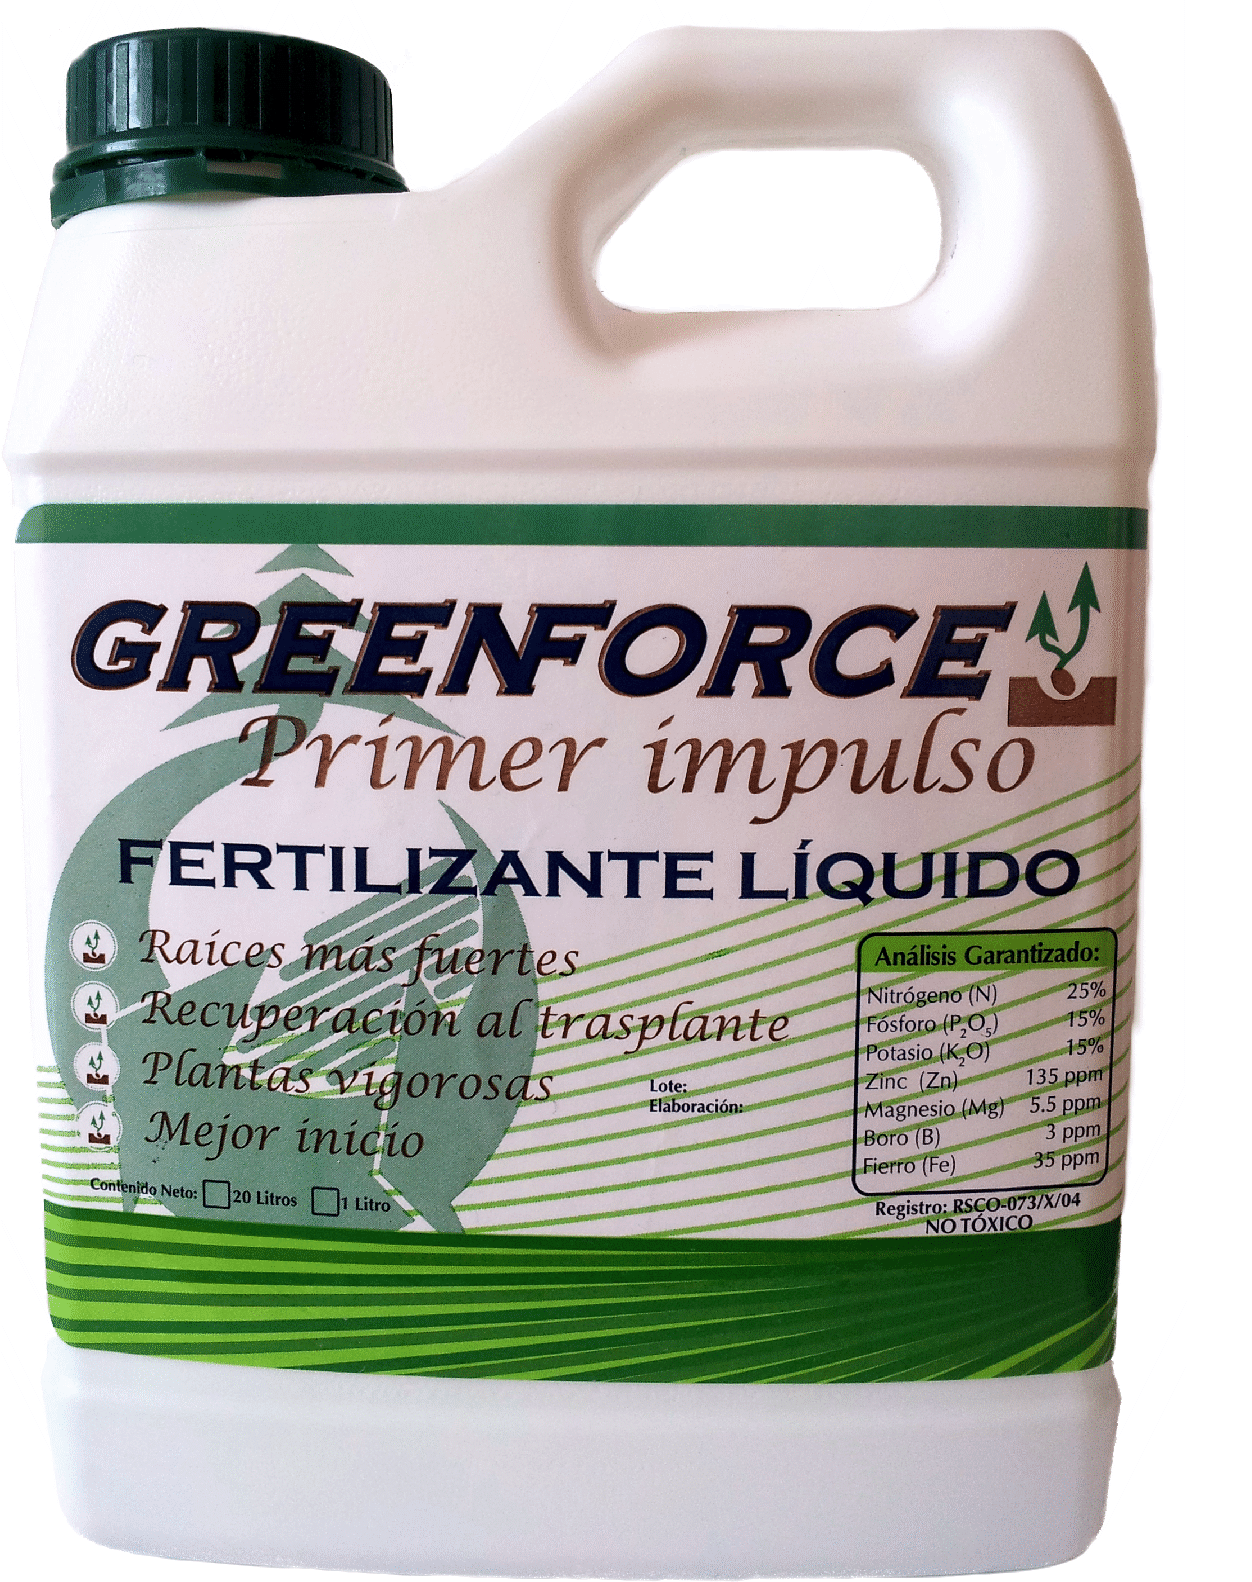 GreenForce Primer impulso